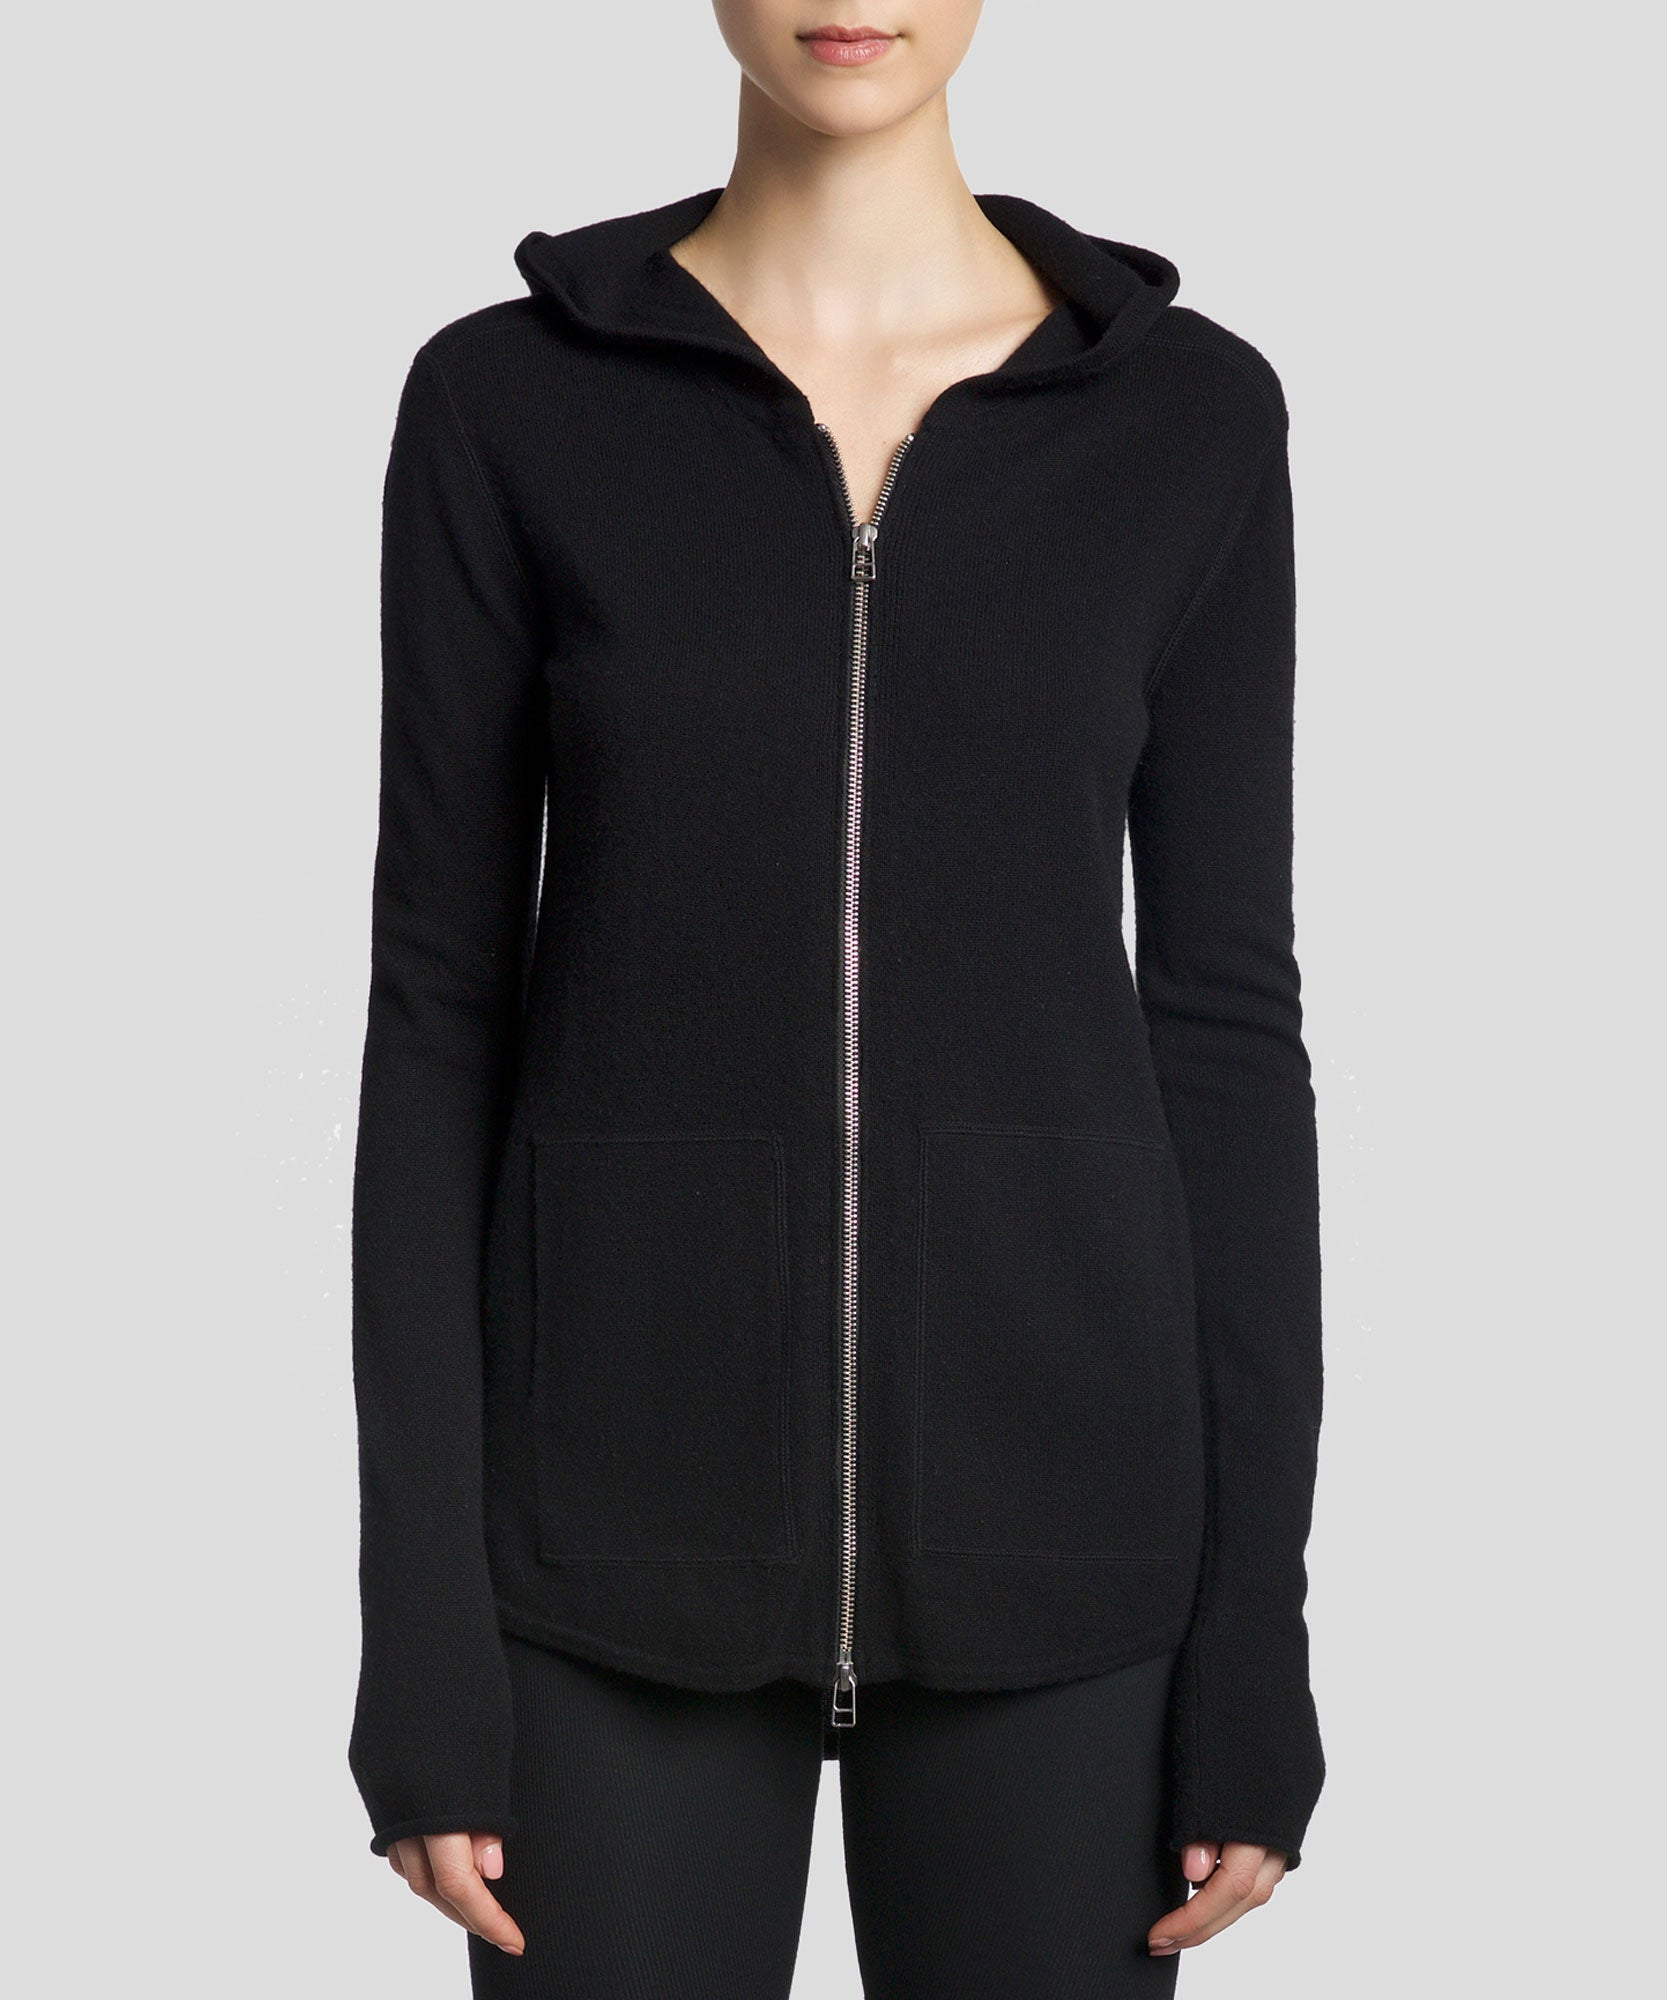 Black Cashmere Blend Double Zip-Up Hoodie - Women's Luxe Sweater by ATM Anthony Thomas Melillo